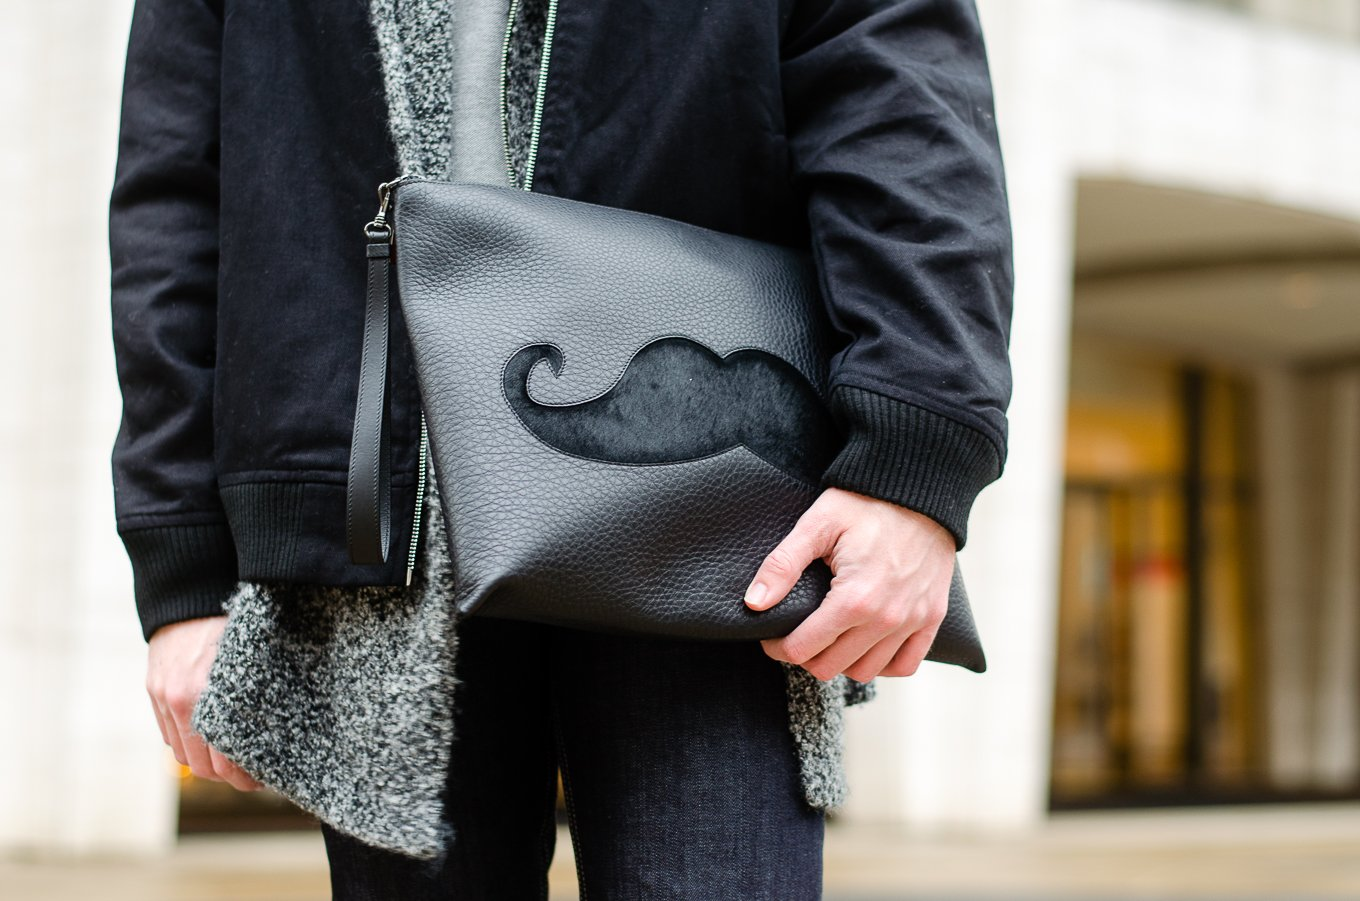 The Kentucky Gent, a men's fashion and lifestyle blogger, spends his first day of NYFW at Lincoln Center in Christian Louboutin sneakers and bag.